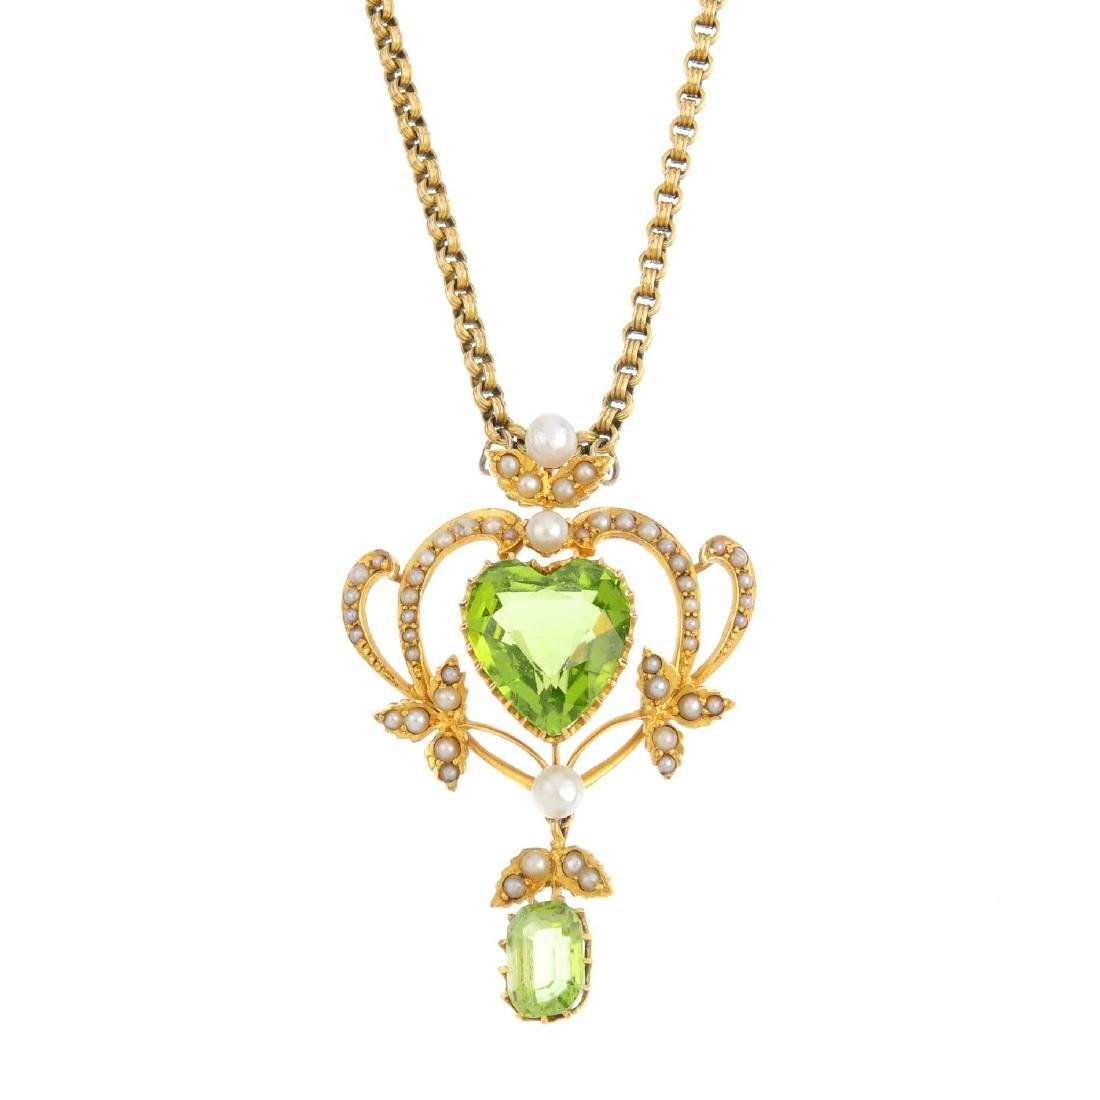 An Edwardian 15ct gold peridot and pearl pendant. The